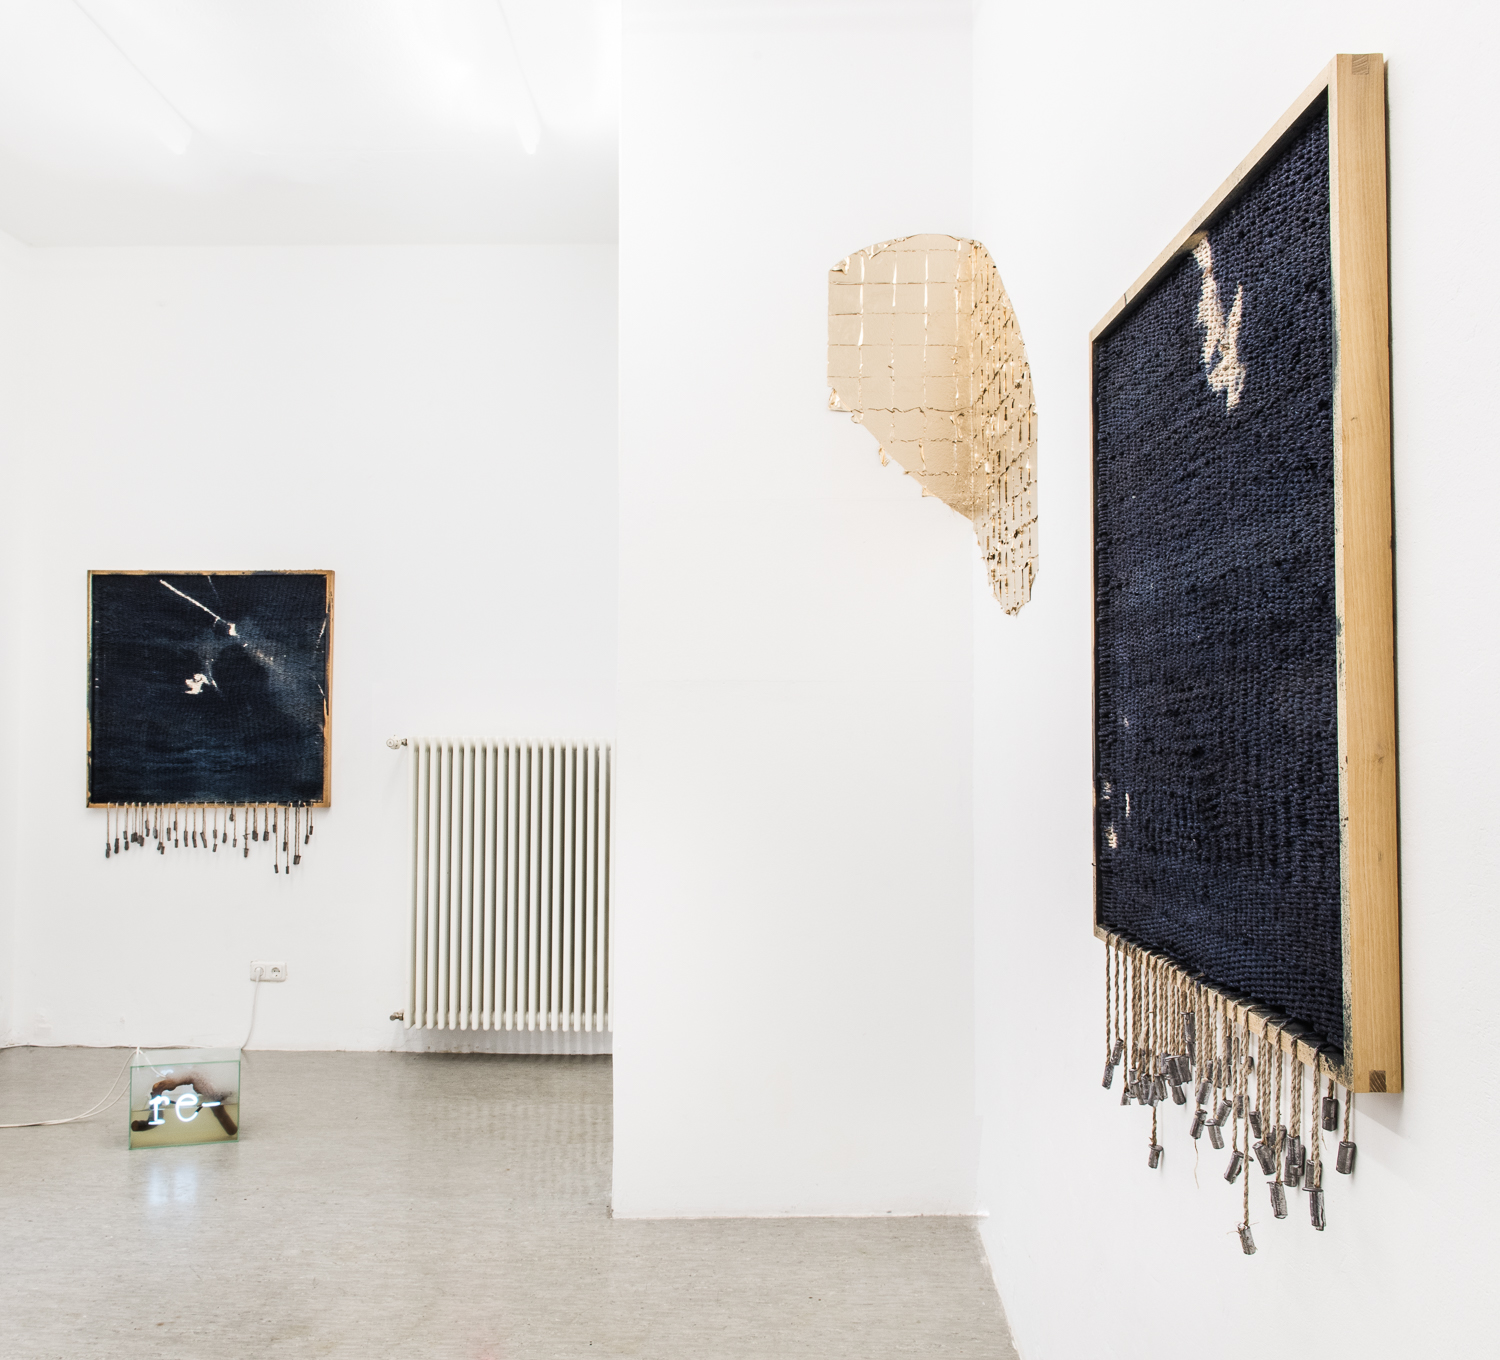 installation view re  (2015-16) and  Ausblick  (2018)  and two works by Rasmus Søndergaard Johannsen  © Robert Schittko